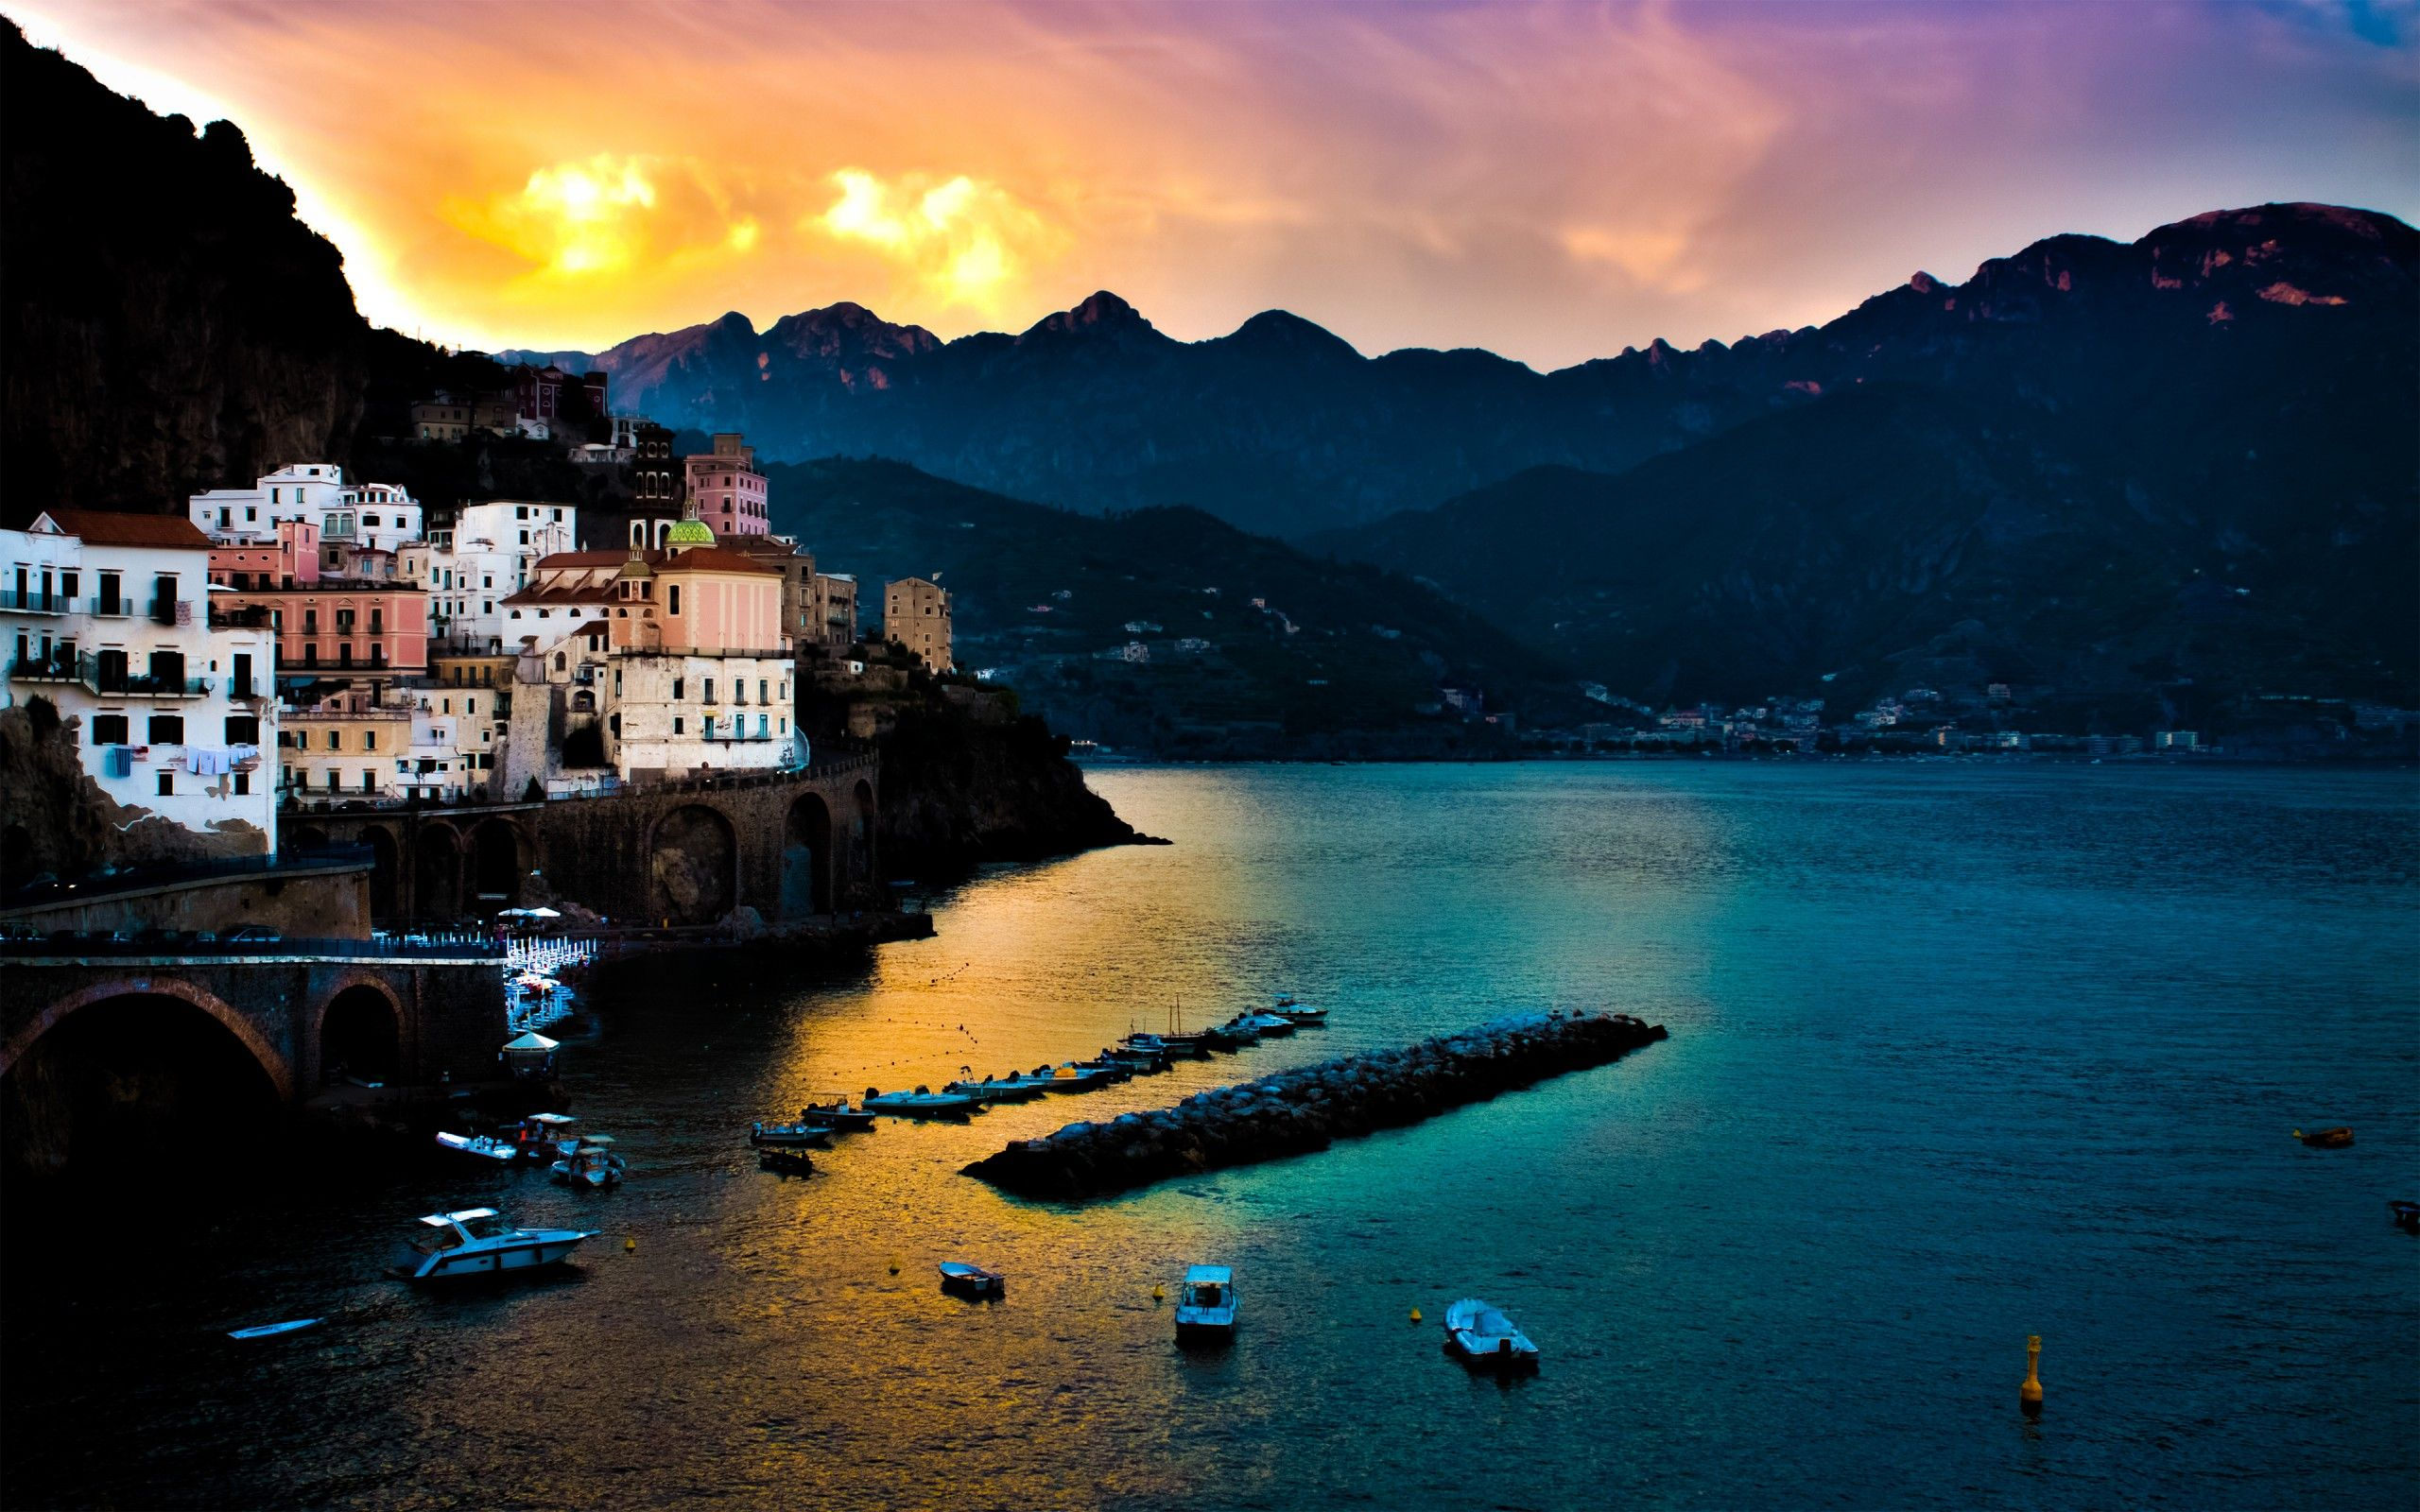 Amazing High Resolution Wallpapers Backgrounds For Your Desktop Computer Laptop Phones More On The Way Follow If You Amalfi Italy Amalfi Coast Amalfi